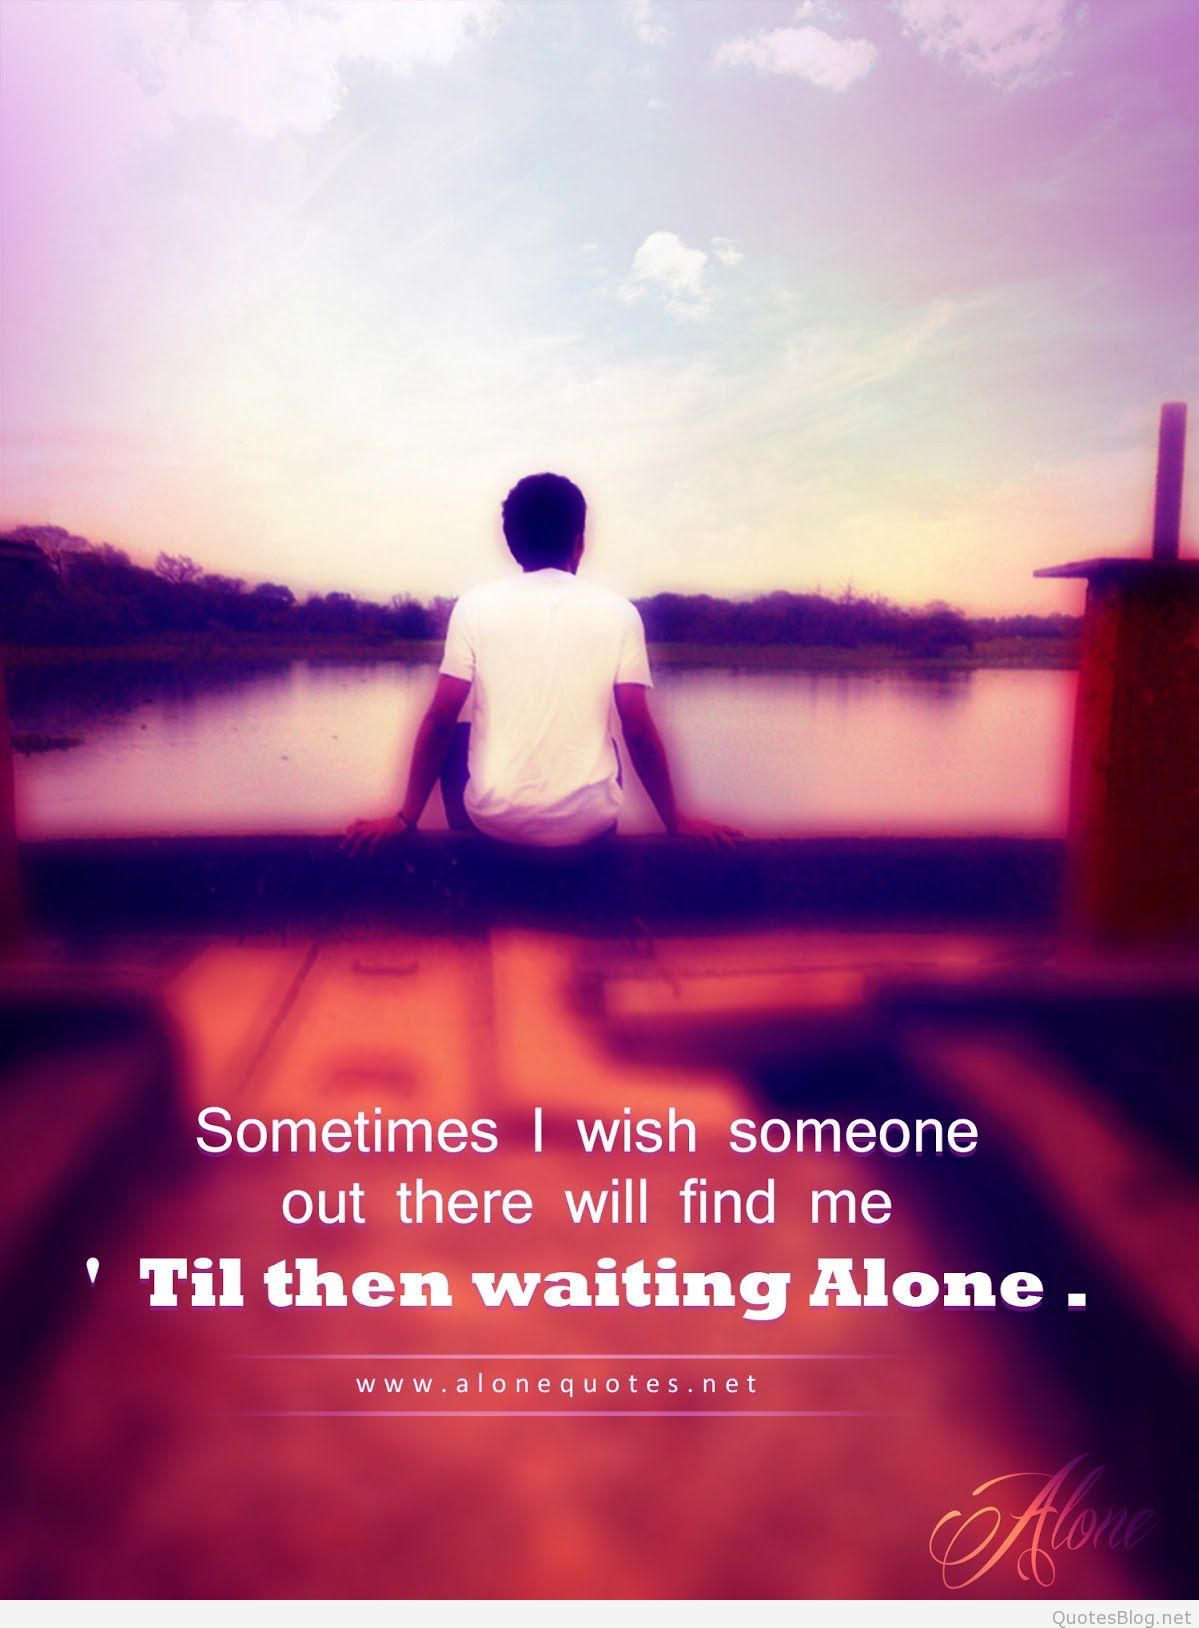 Sad love quotes for boys sad alone boy love quotes wallpaper sad love quotes for boys sad alone boy love quotes wallpaper download sad alone boy love cool voltagebd Images